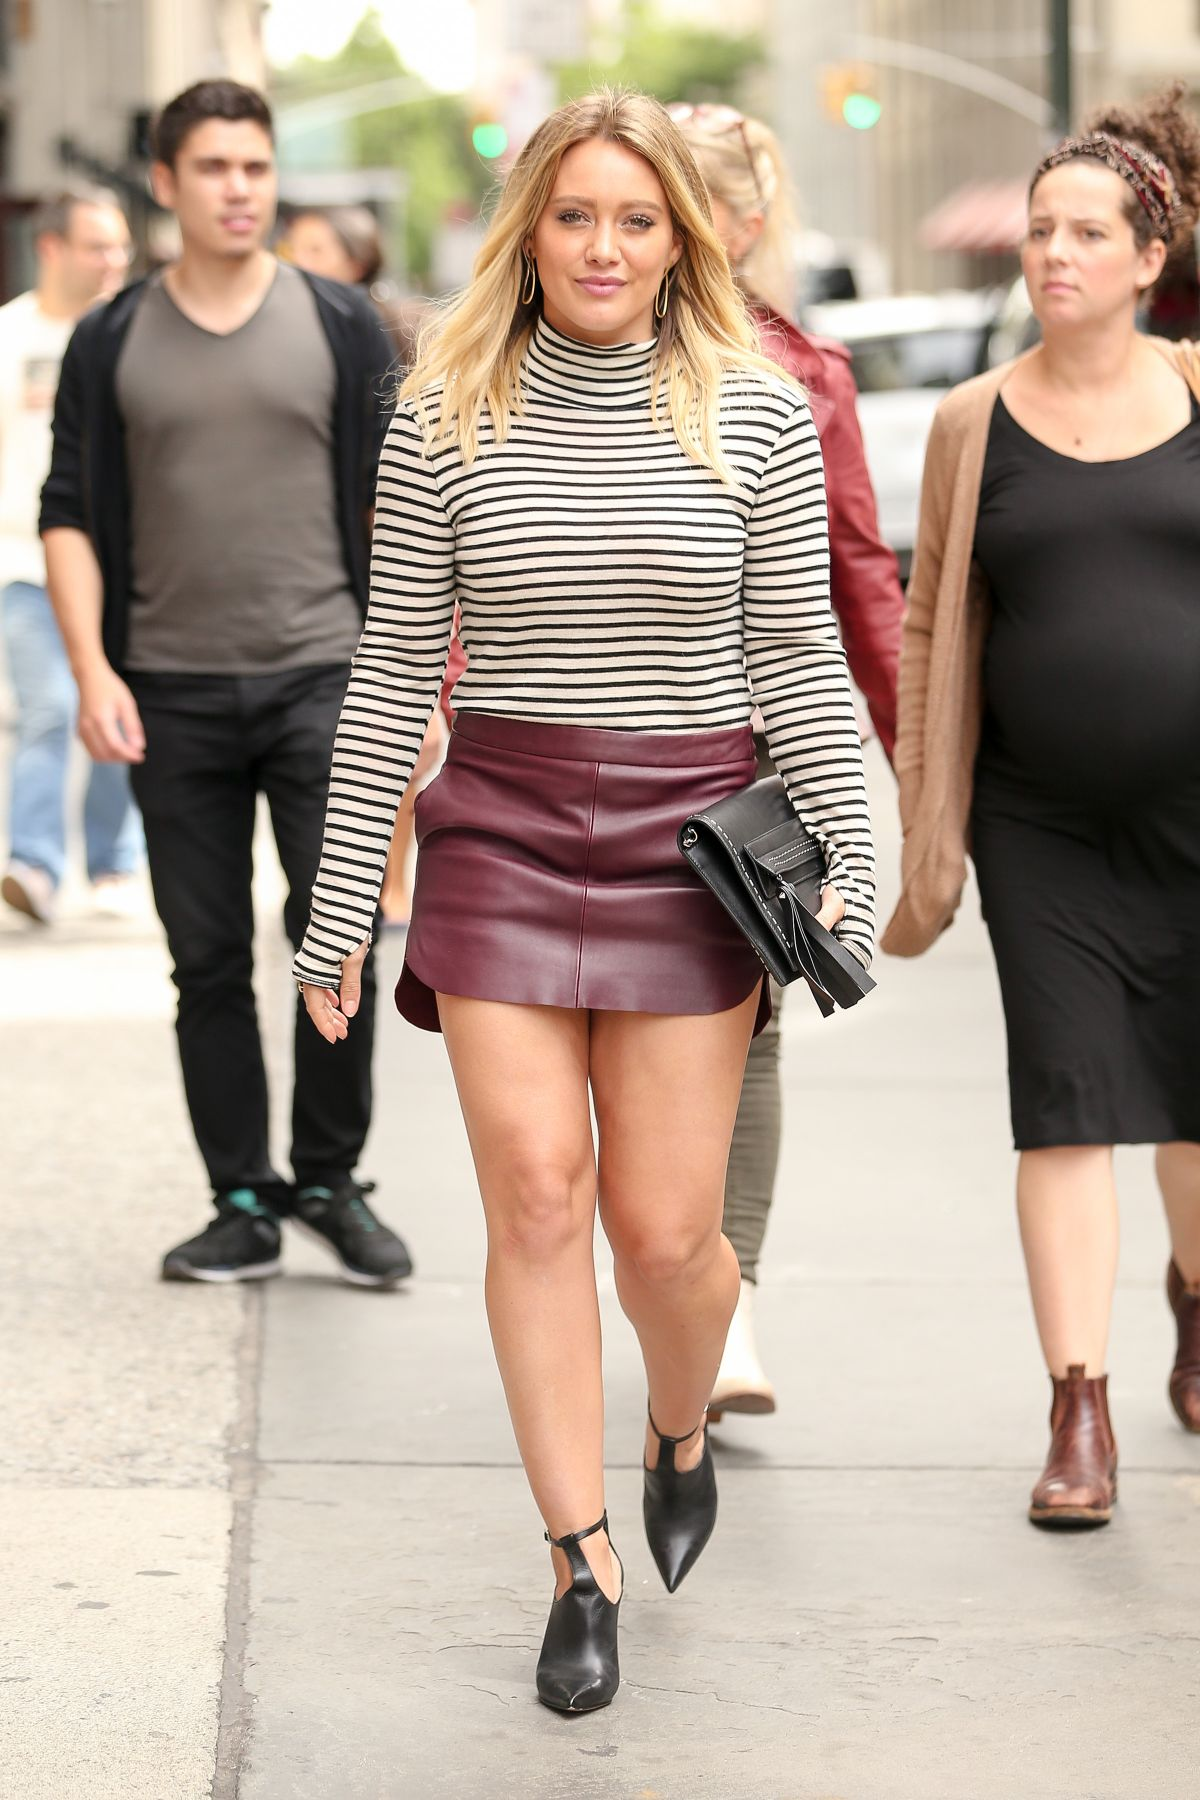 hilary duff arrives at abc kitchen in new york 09 27 2016